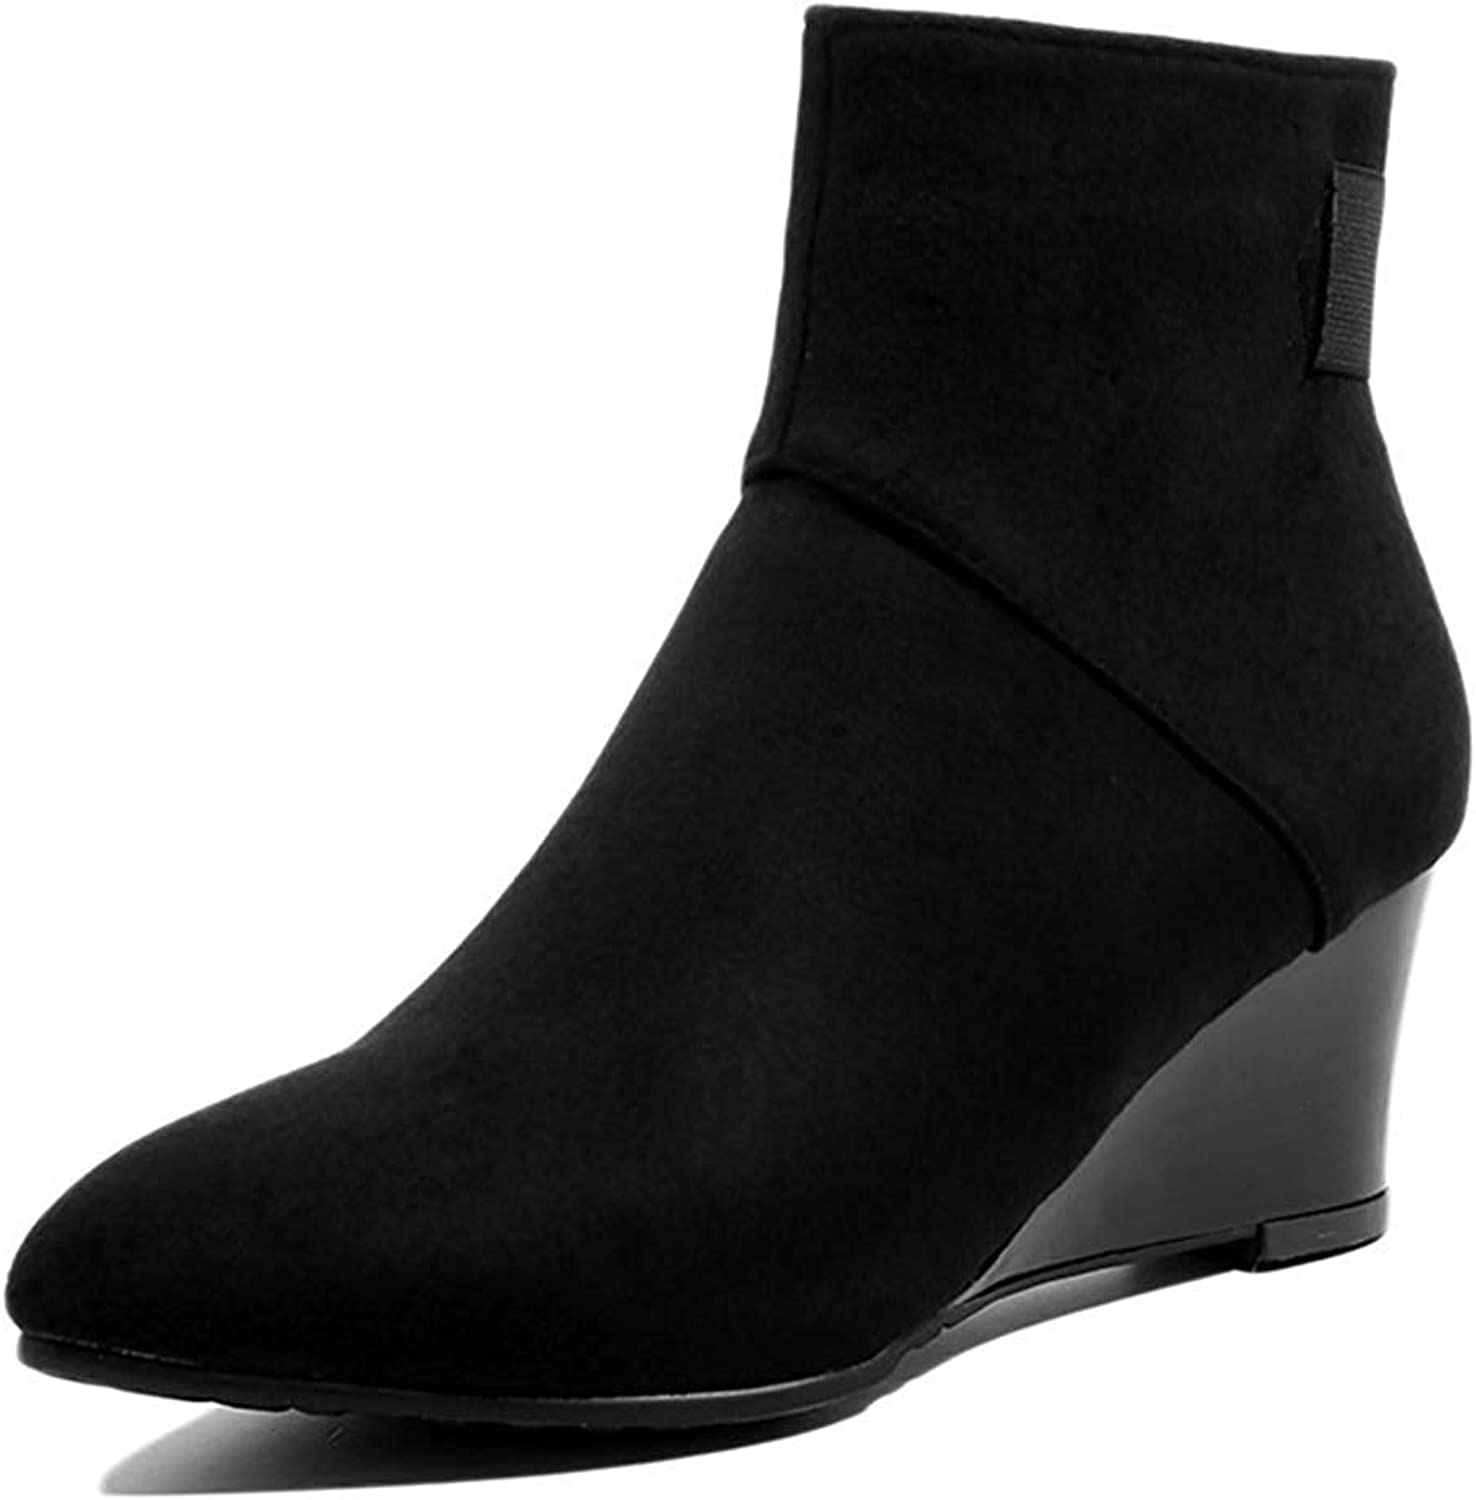 Unm Women's Comfort Faux Suede Inside Zip Up Pointy Toe Short Boots Stacked Mid Heel Wedge Ankle Booties